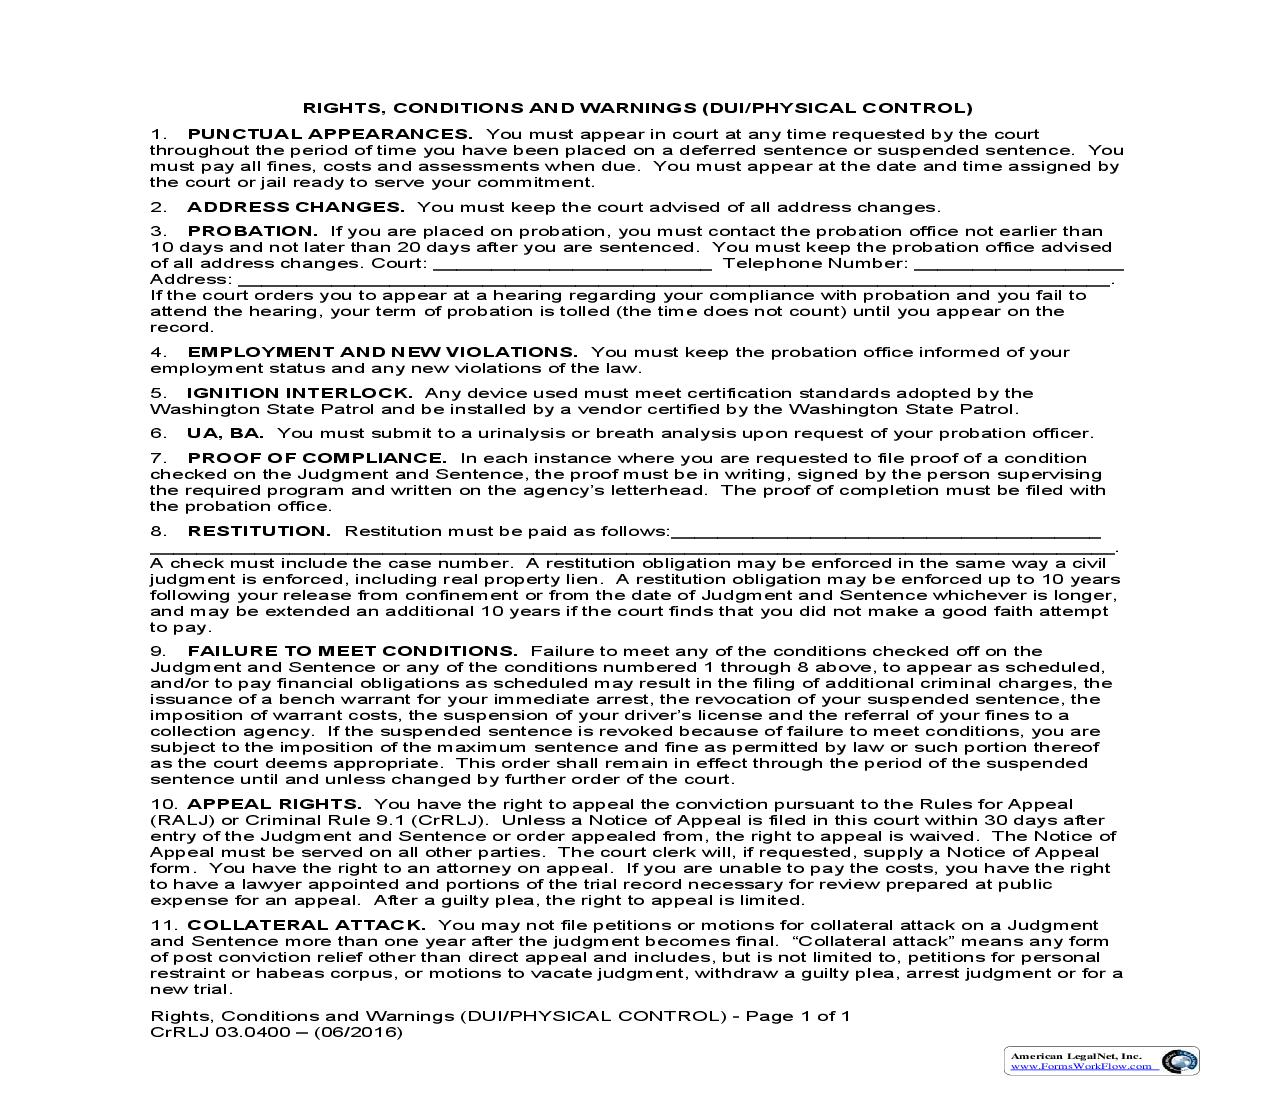 Rights Conditions And Warnings (DUI-Physical Control) {CrRLJ 03.0400} | Pdf Fpdf Doc Docx | Washington